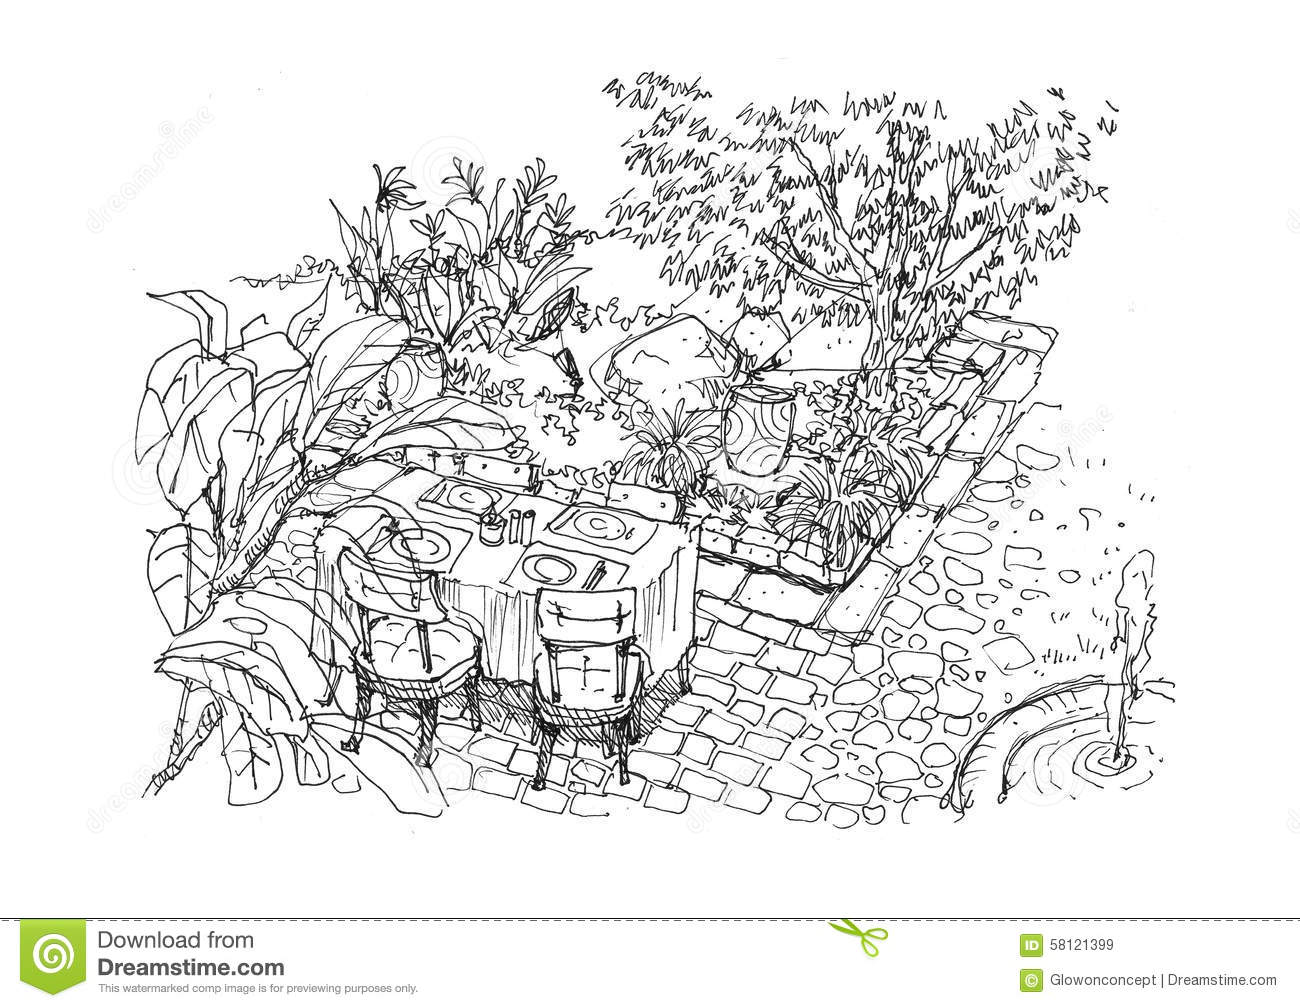 Diner settiing dans l 39 illustration de dessin de main de sc ne de jardin illustration stock for Dessin de table de jardin